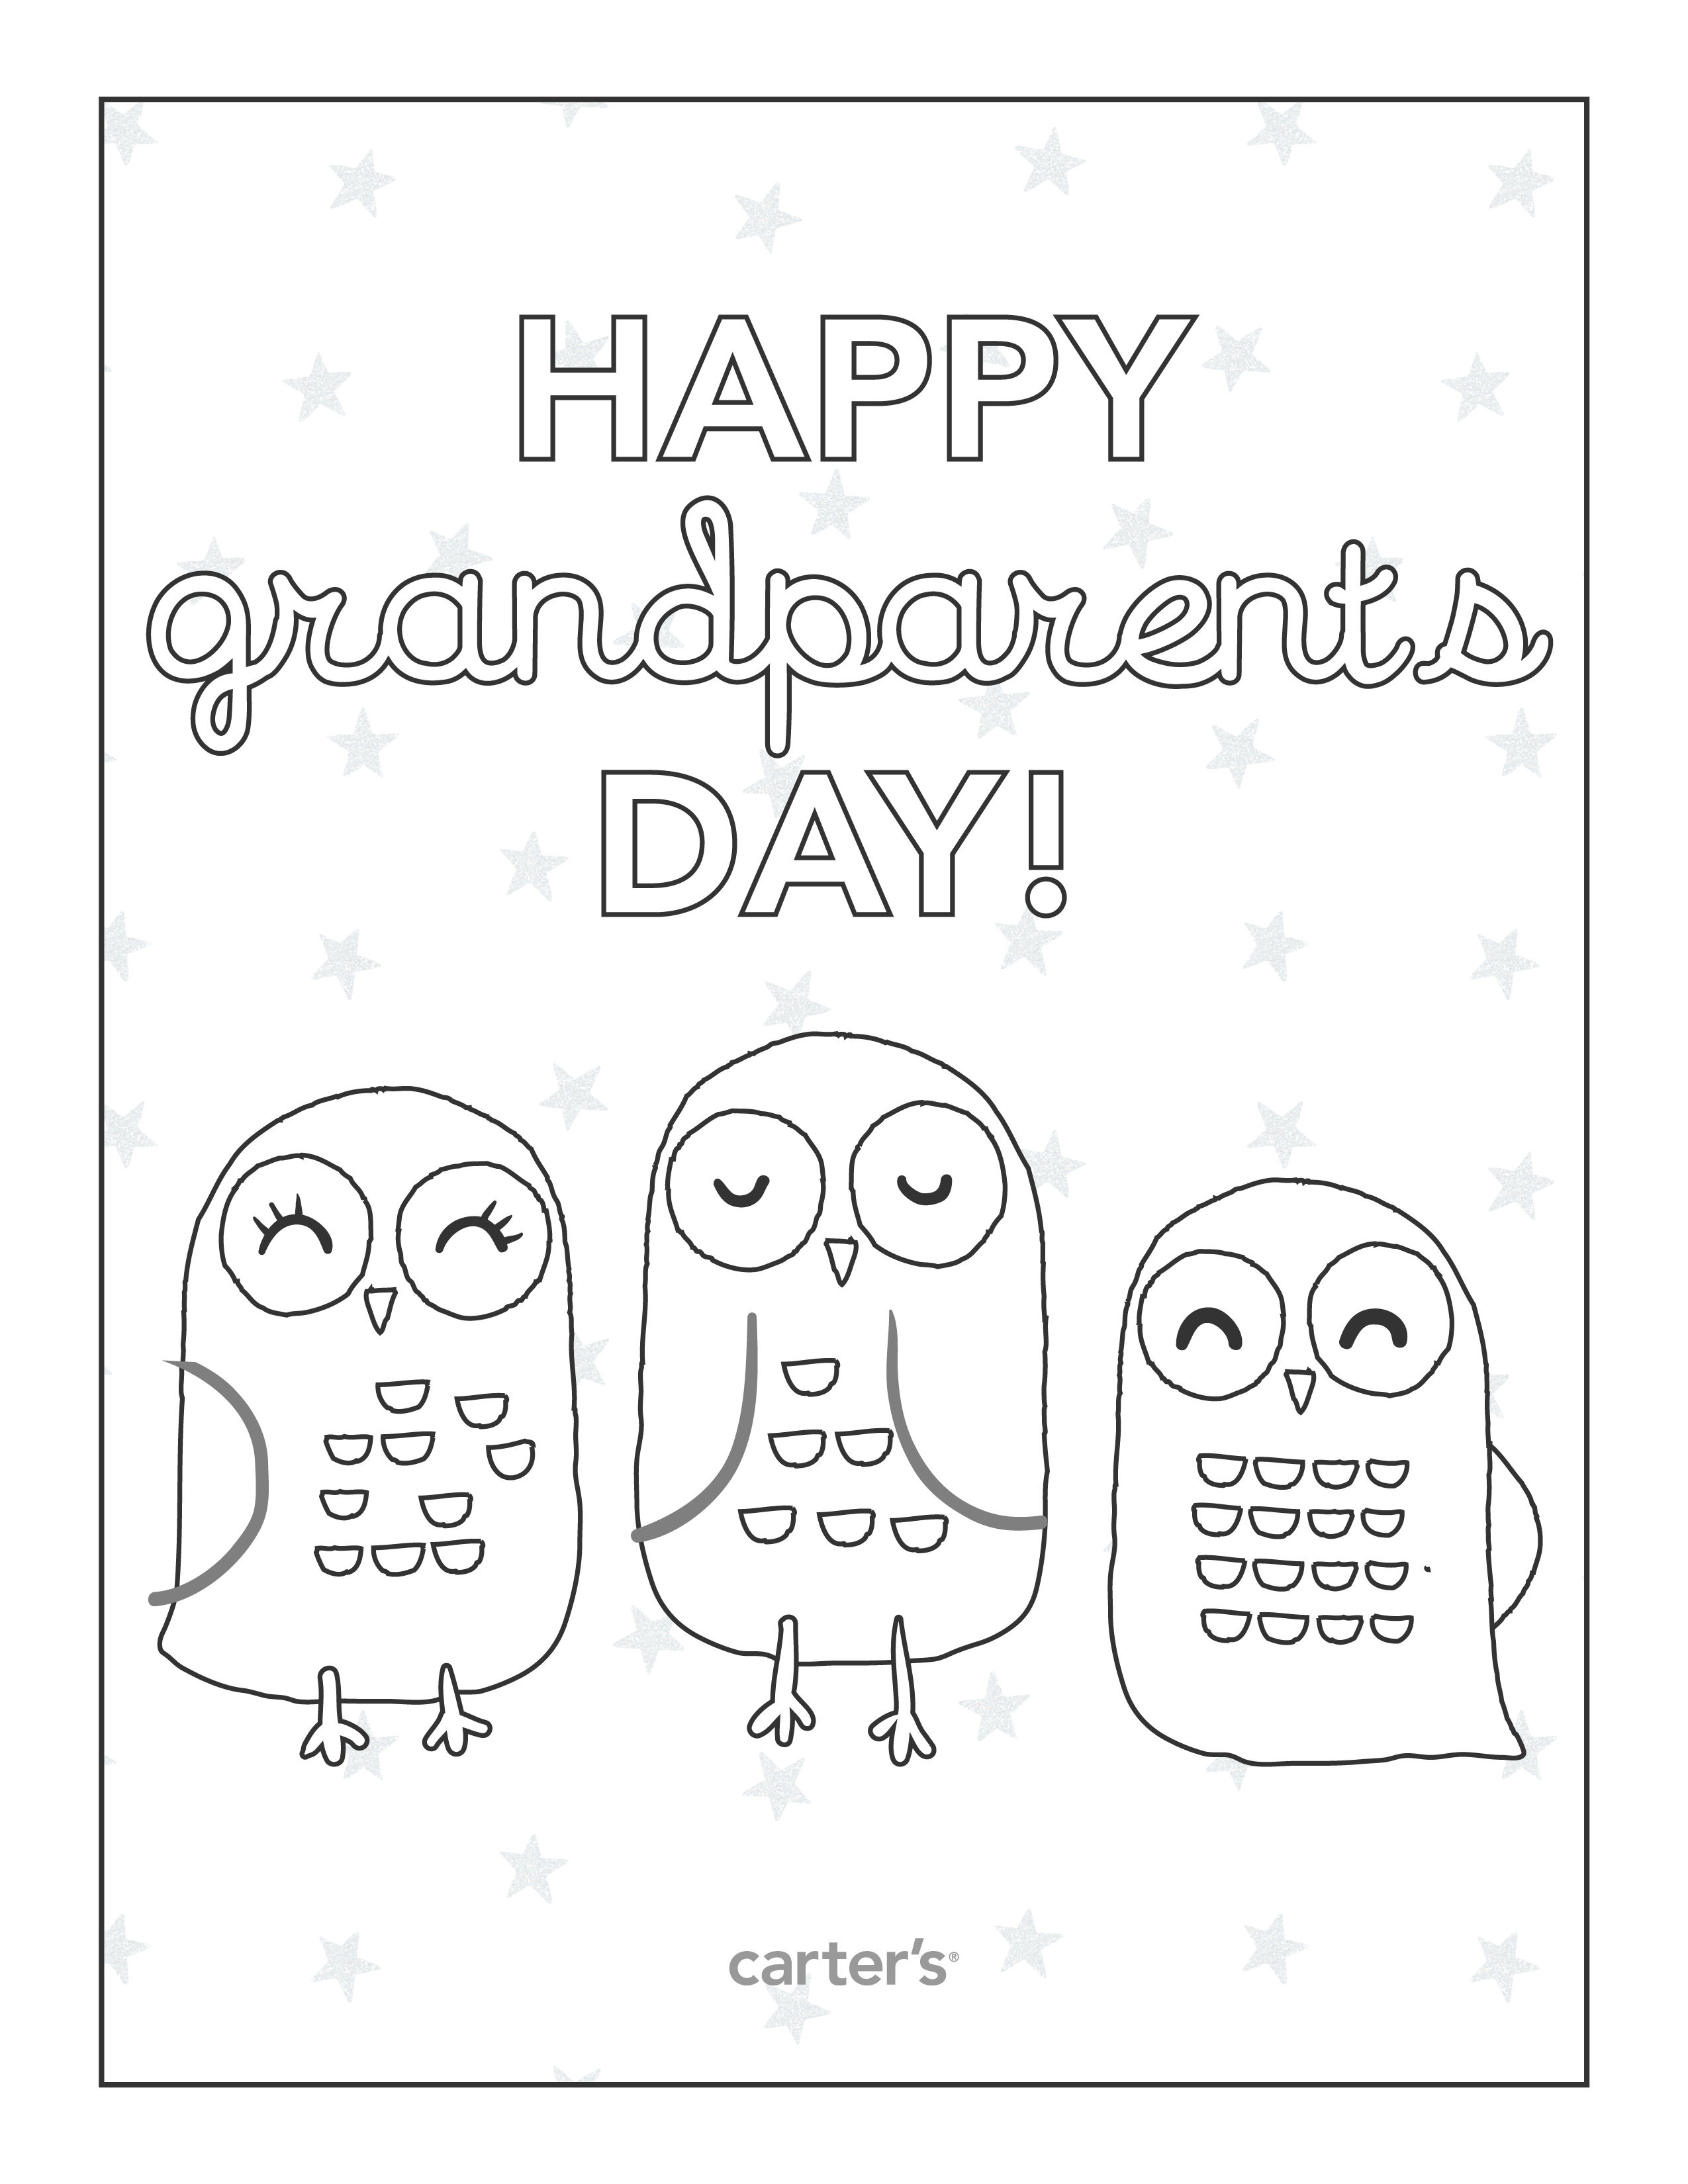 Happy Grandparents Day Owl Coloring Sheet Grandparentsday